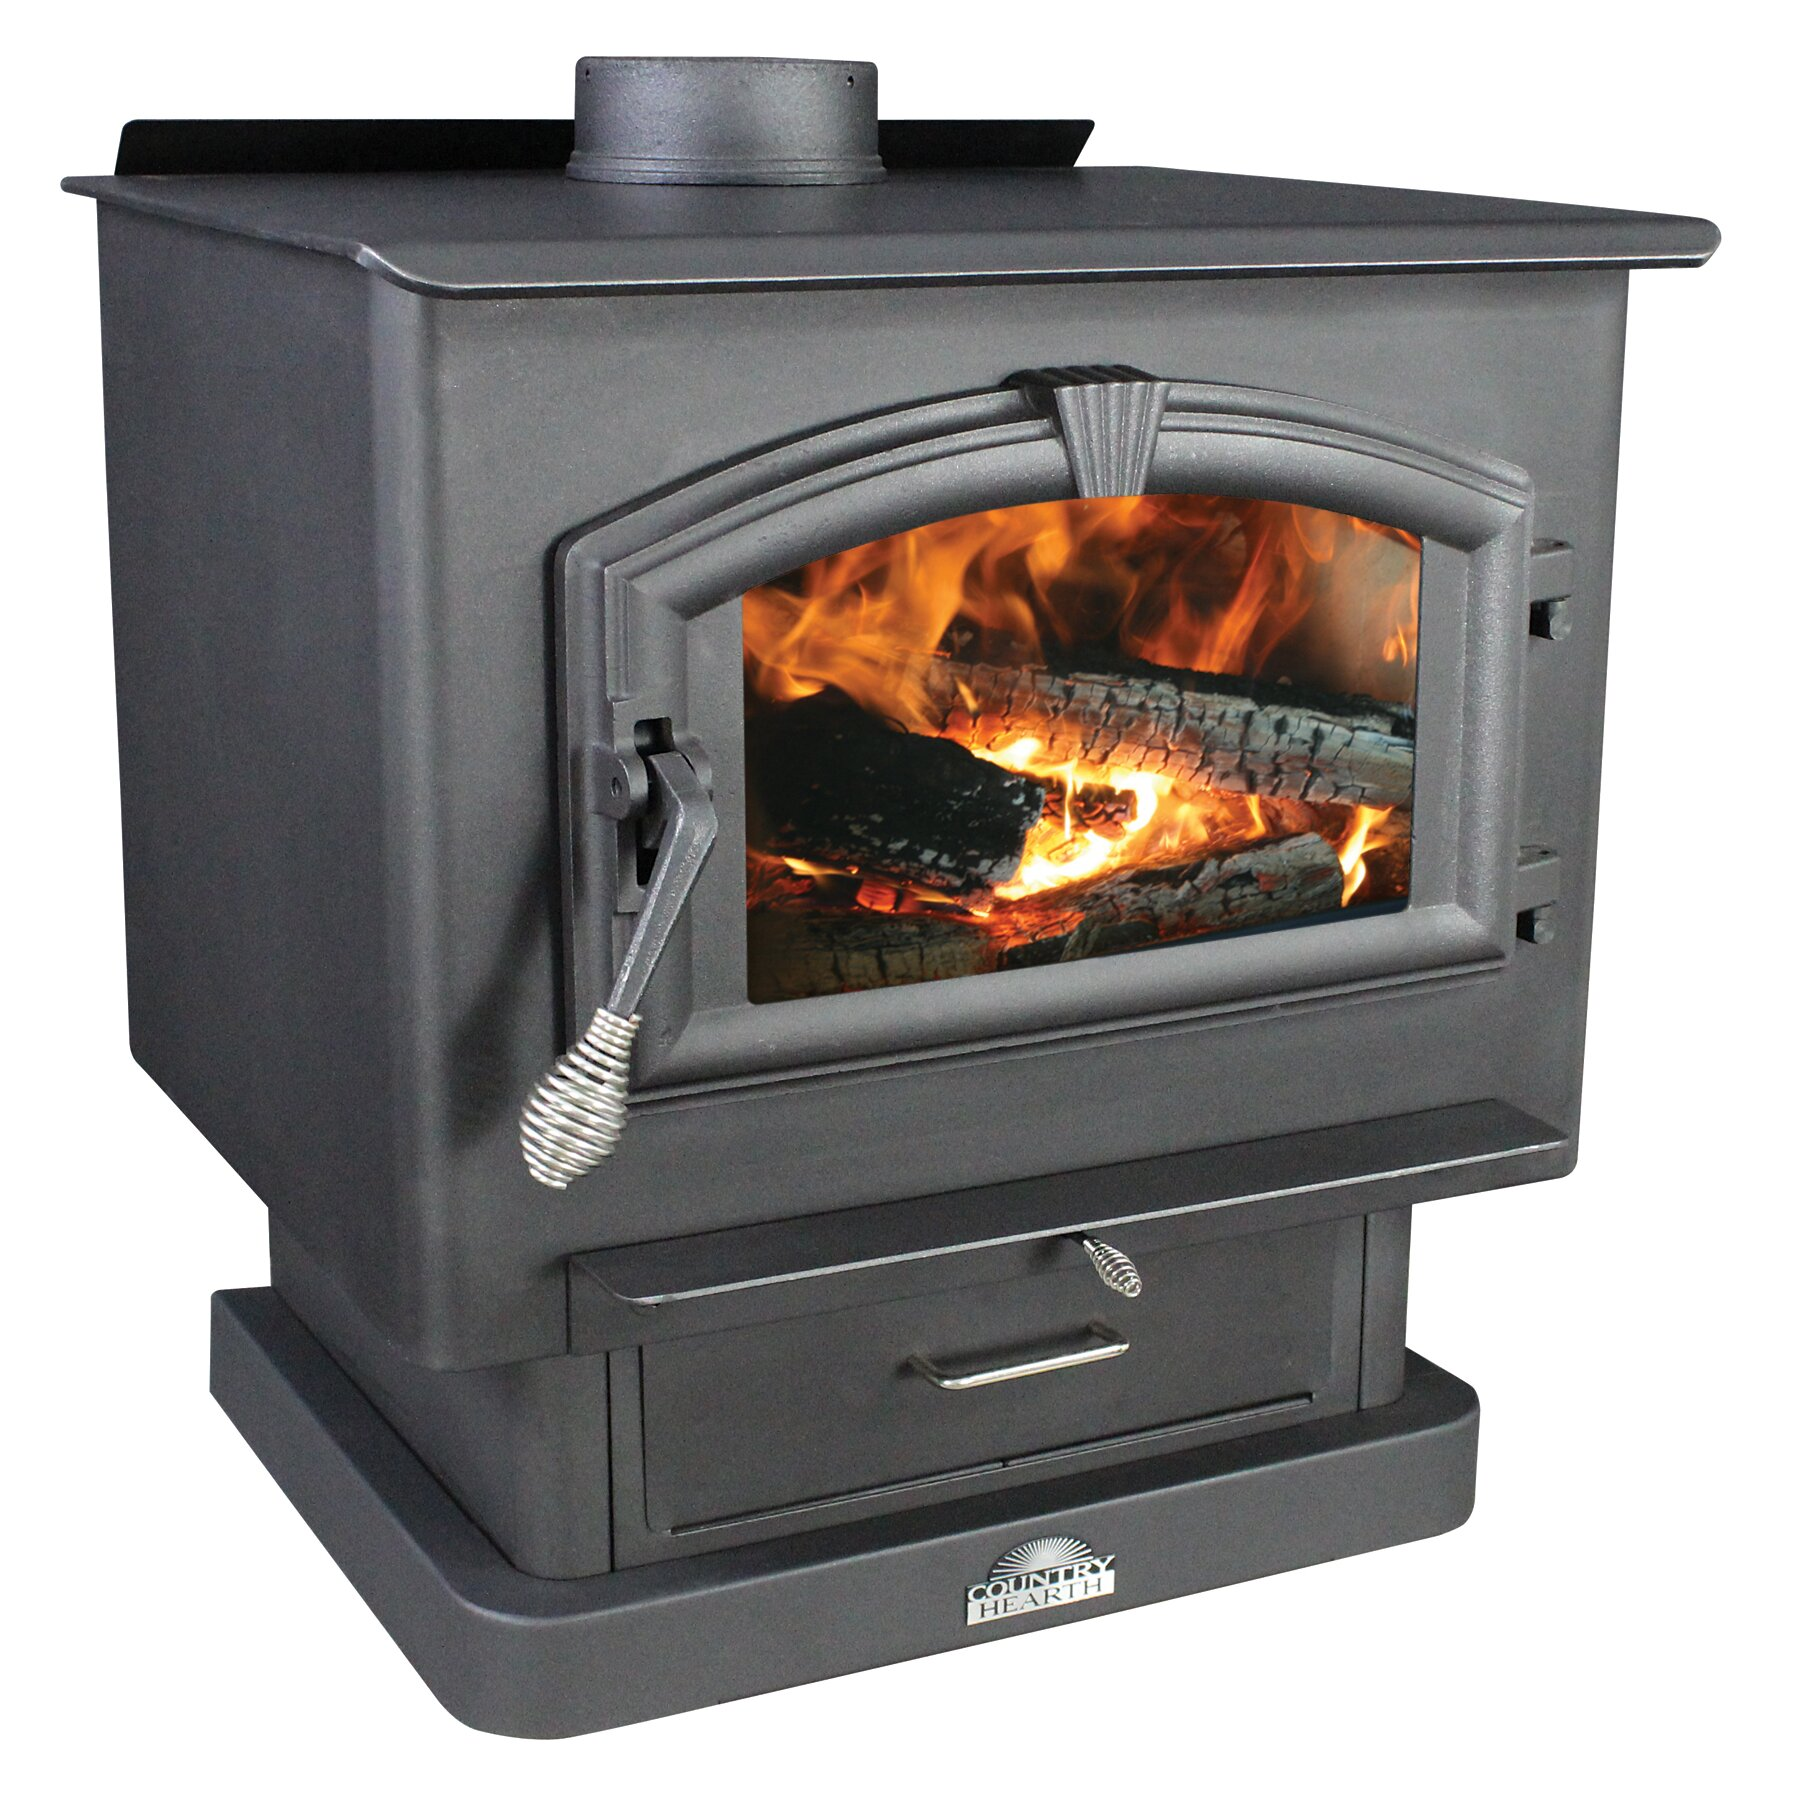 Us stove 2 000 square foot wood stove with blower for Hardwood floors 2000 sq ft